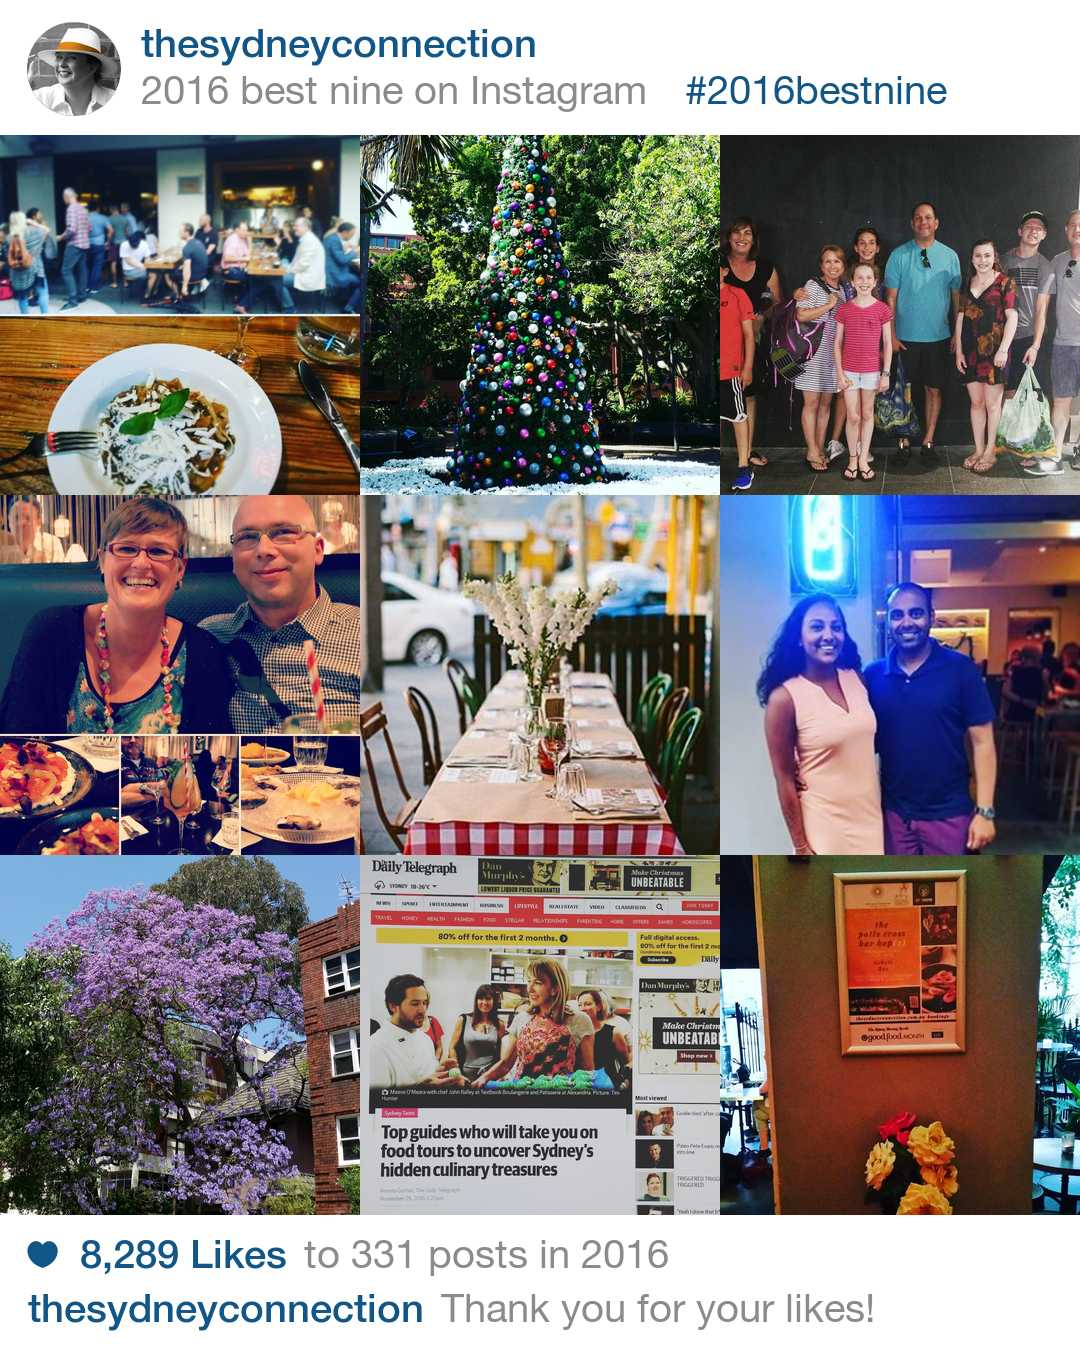 The Sydney Connection Best Nine 2016 on Instagram